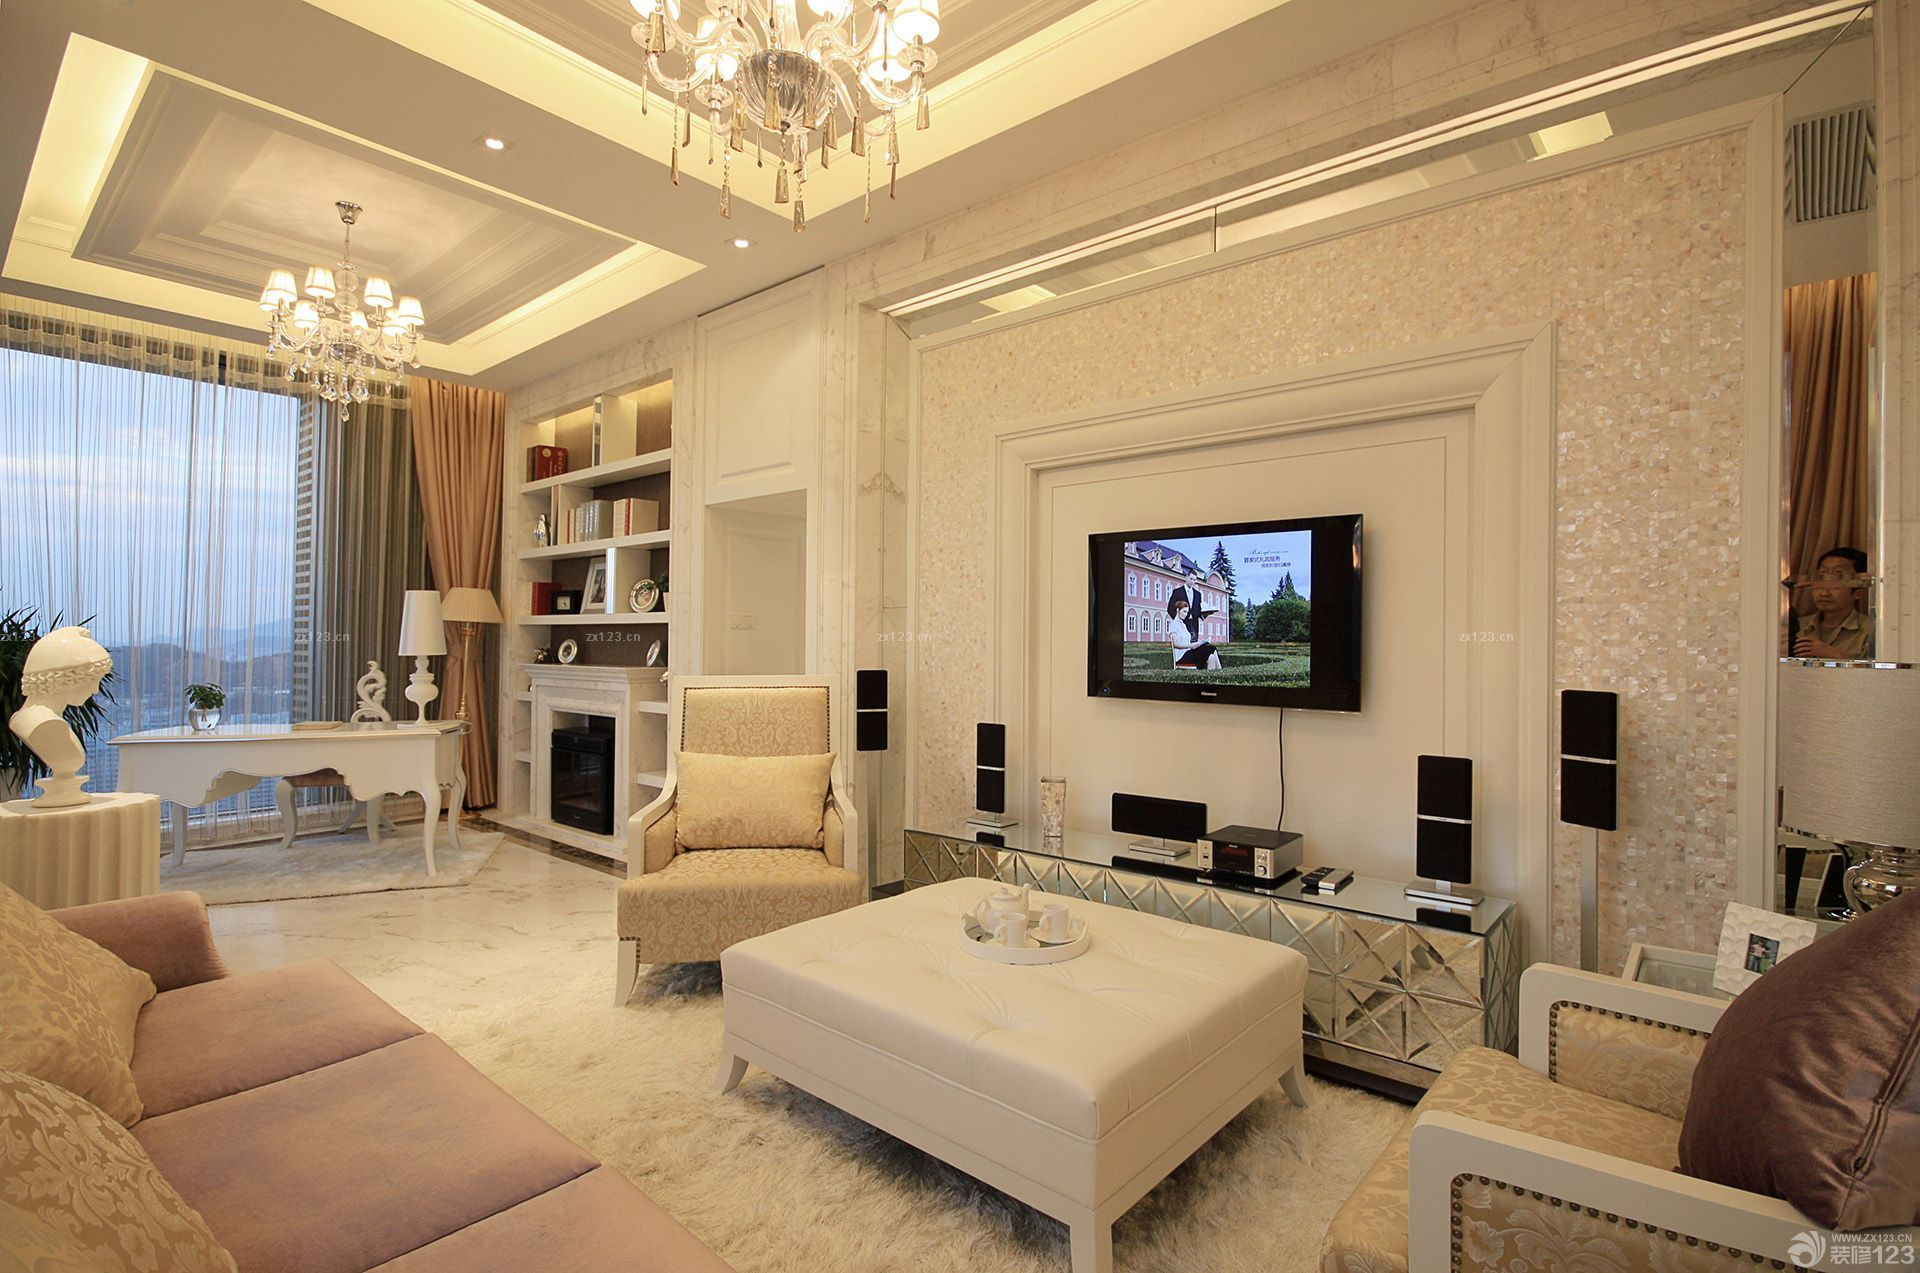 80 456 for Selling design pictures